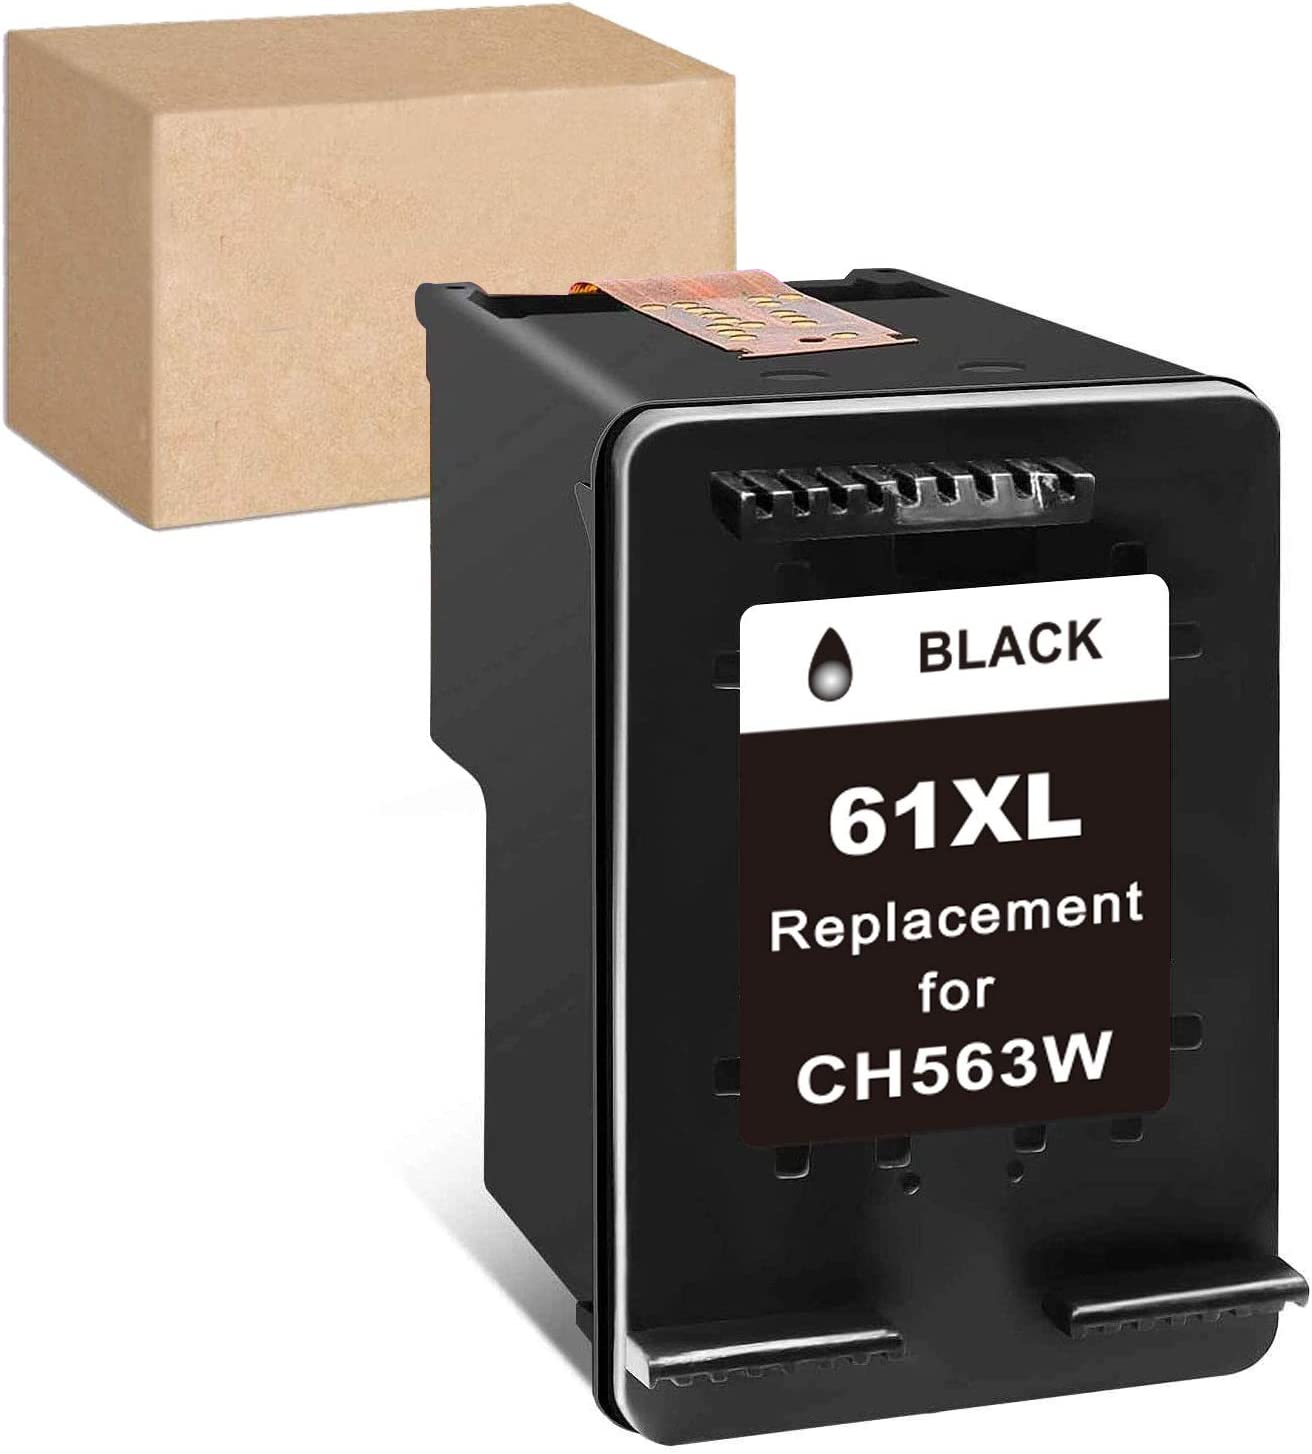 InkSpirit Remanufactured Ink Cartridge 61 Replacement for HP 61XL 61 XL Black Used in Envy 4500 4502 5530 OfficeJet 4630 DeskJet 2512 1512 2542 2540 2544 3000 3052a 1055 3051a 2548 Printer (1-Pack)